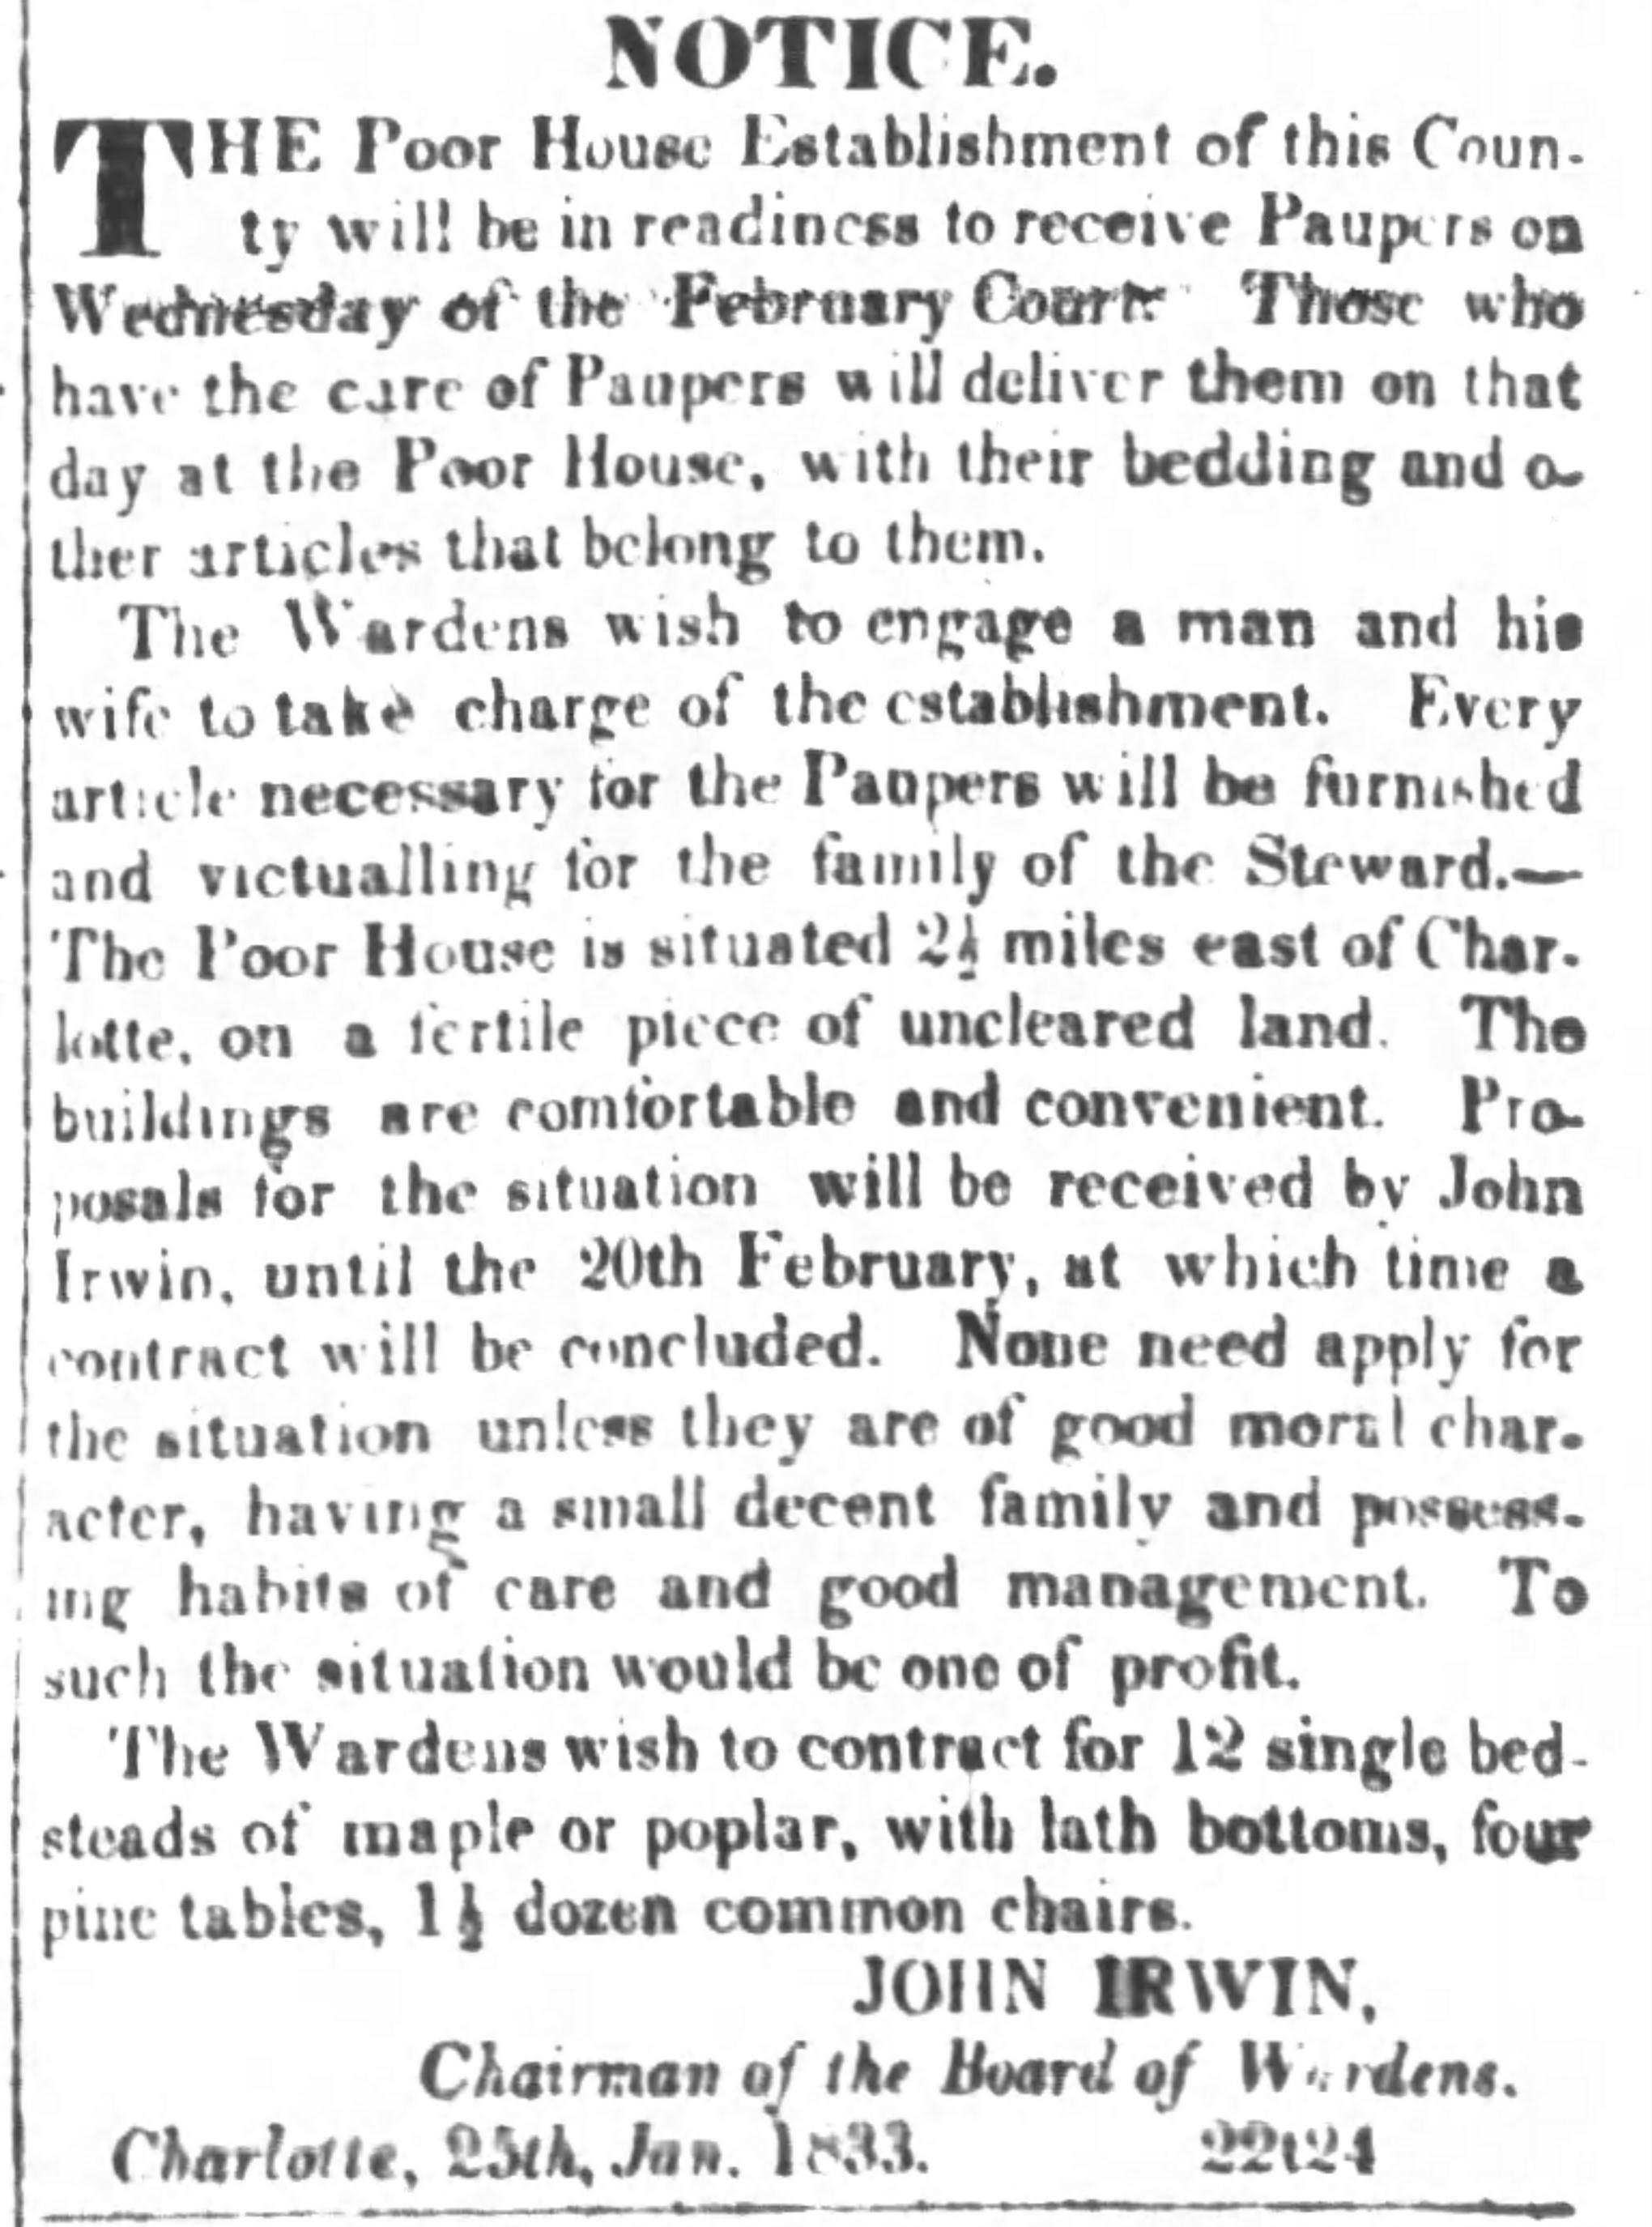 Miners' and Farmers' Journal, January 26, 1833, p.3